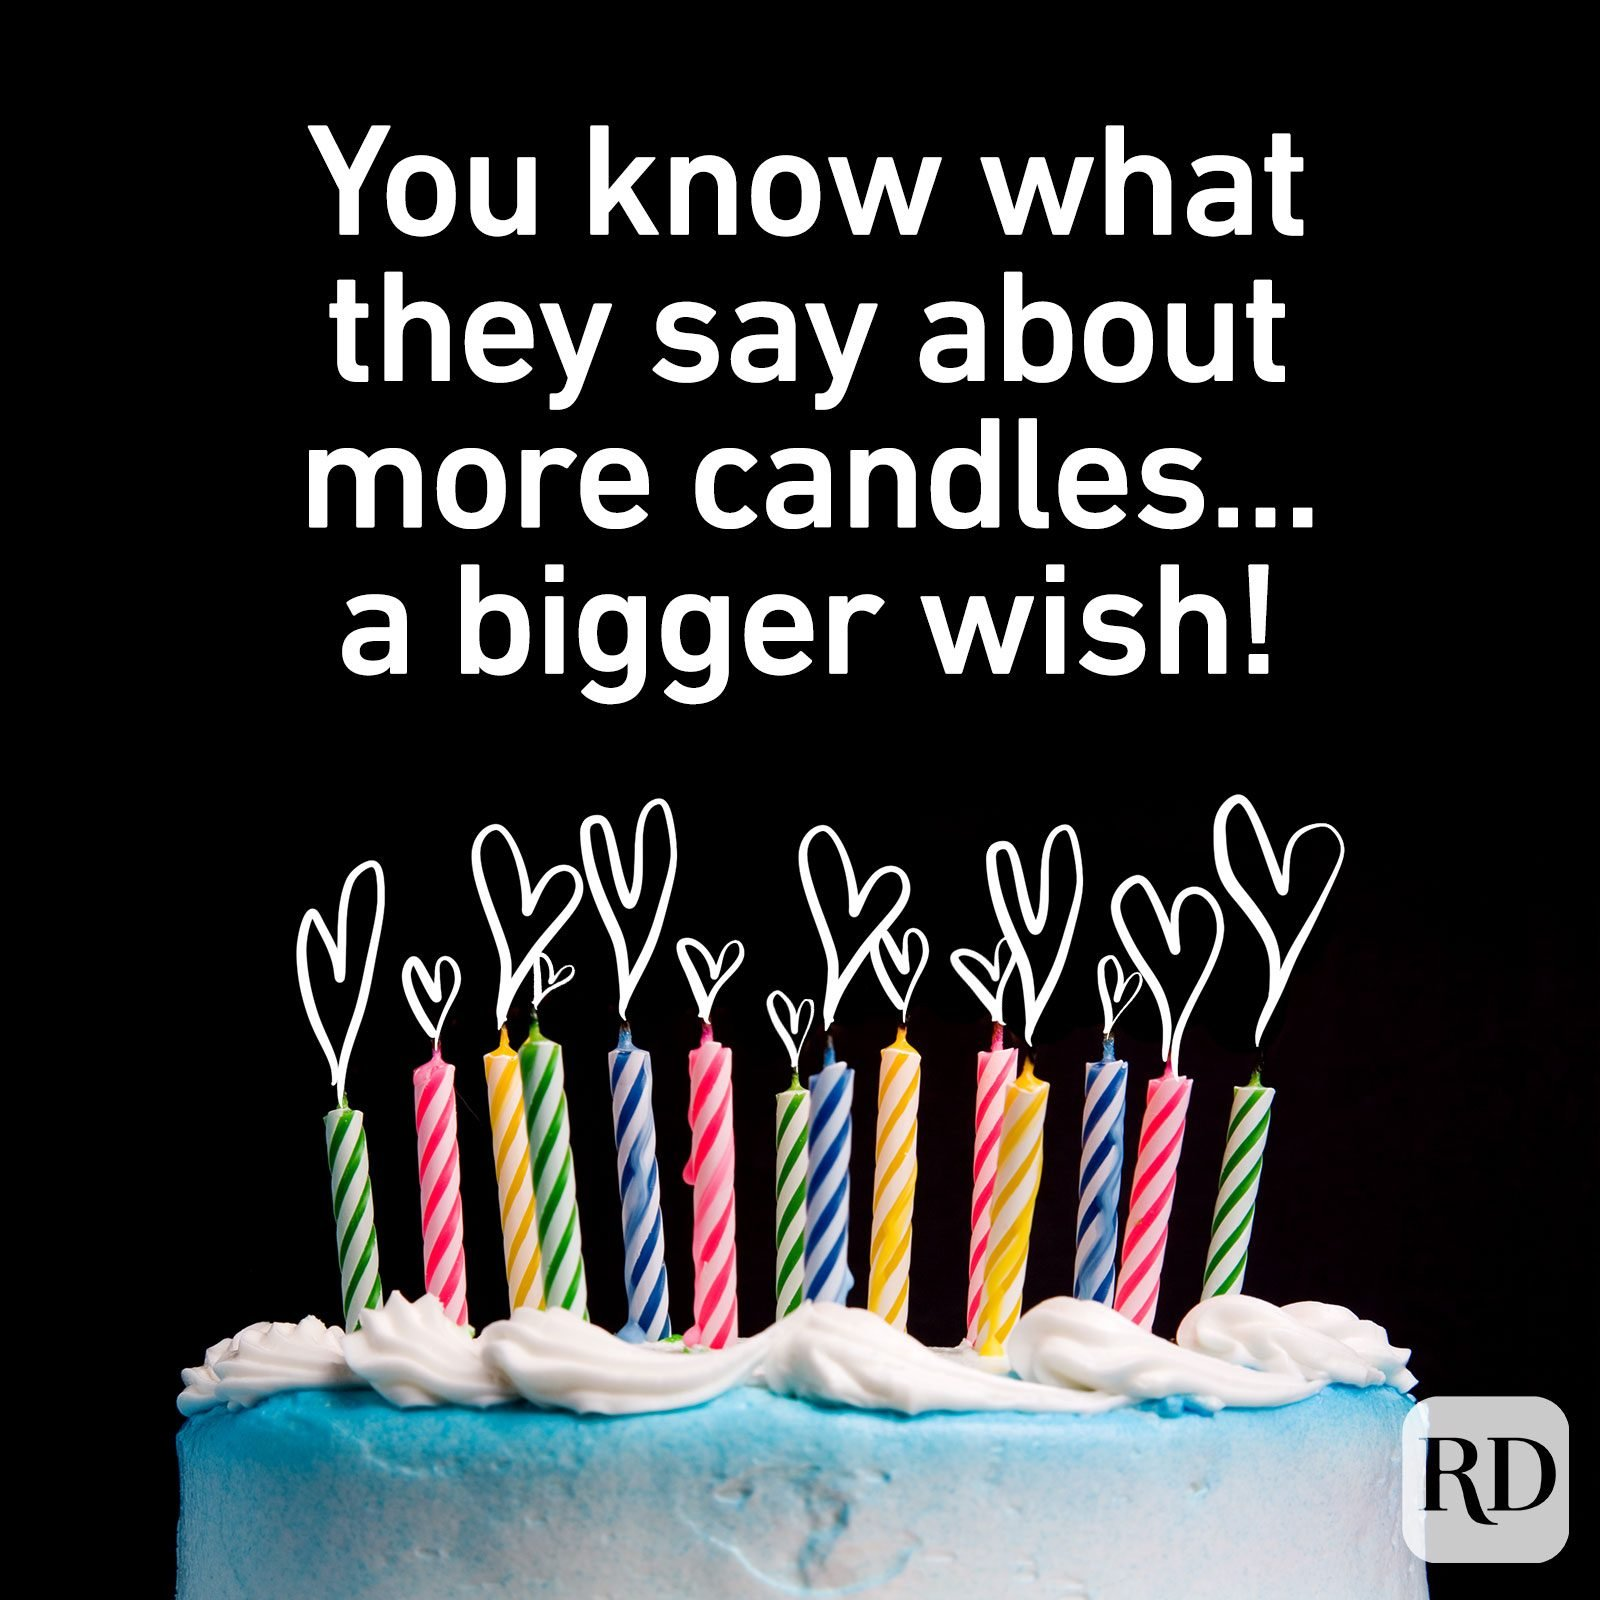 You know what they say about more candles...a bigger wish!